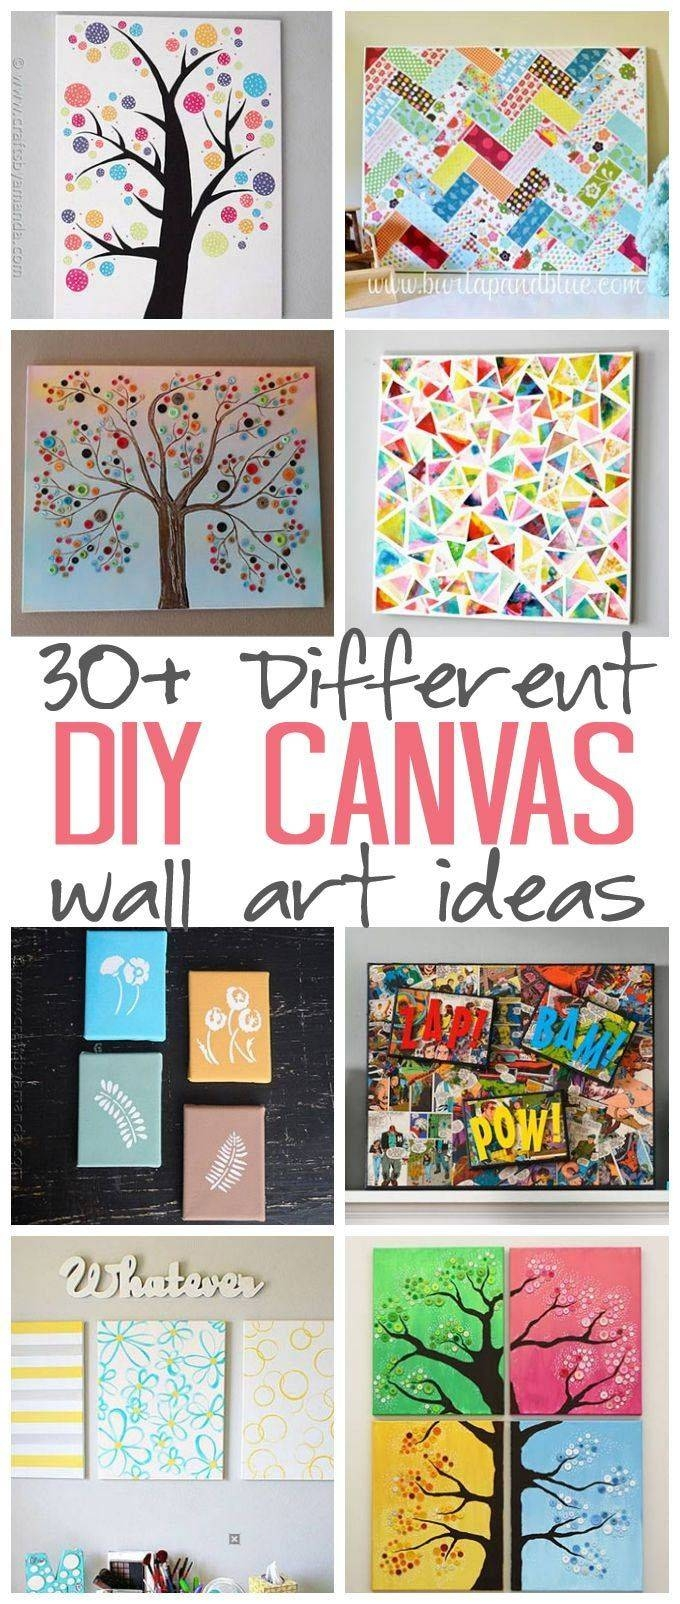 25+ Unique Canvas Wall Art Ideas On Pinterest | Diy Canvas Art Intended For Latest Diy Pinterest Canvas Art (View 2 of 25)